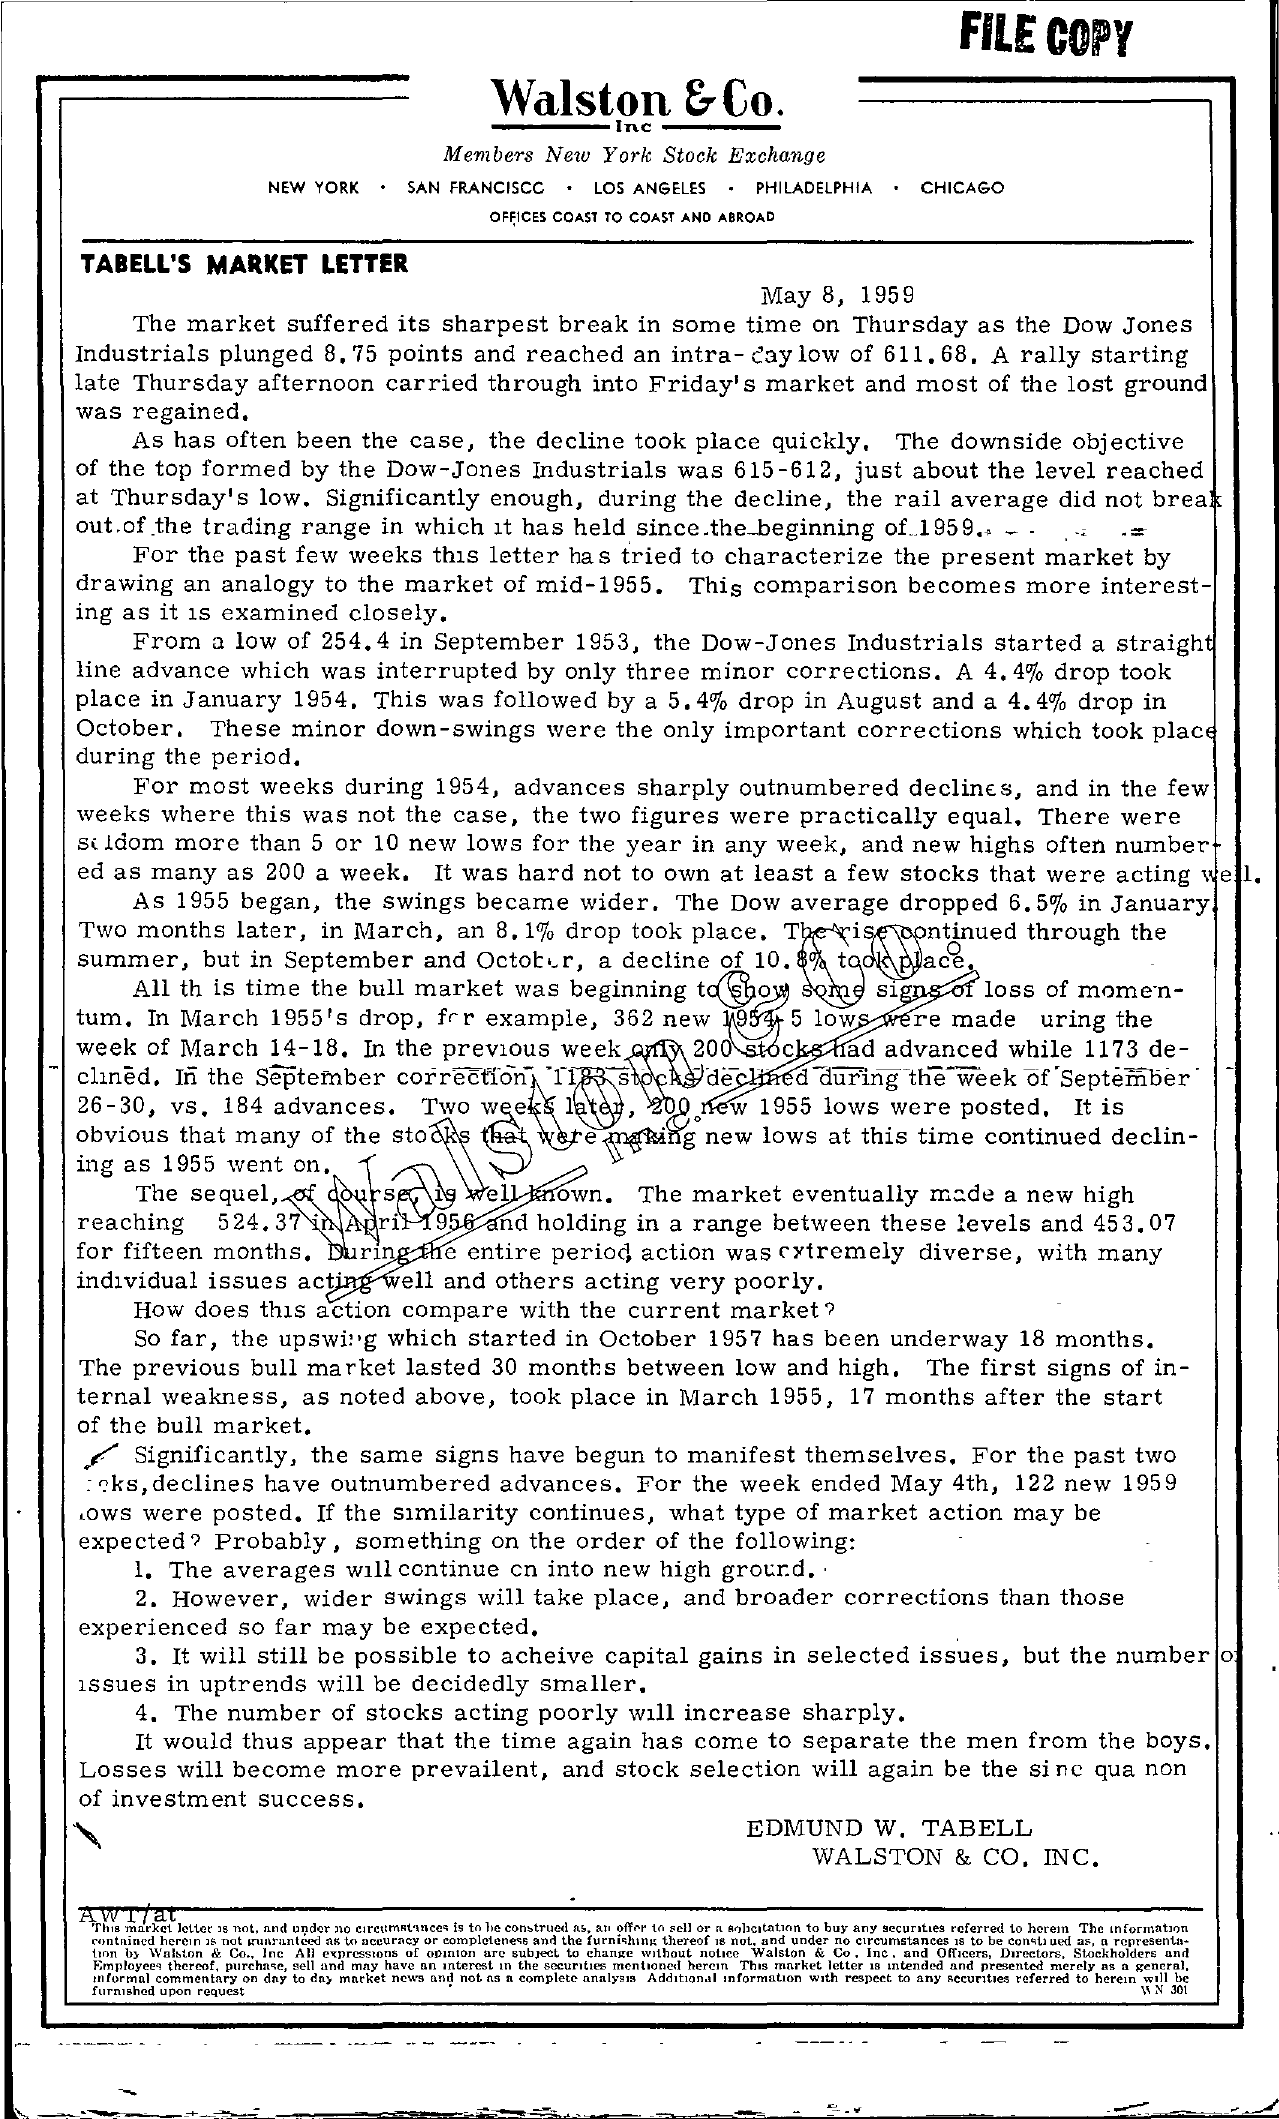 Tabell's Market Letter - May 08, 1959